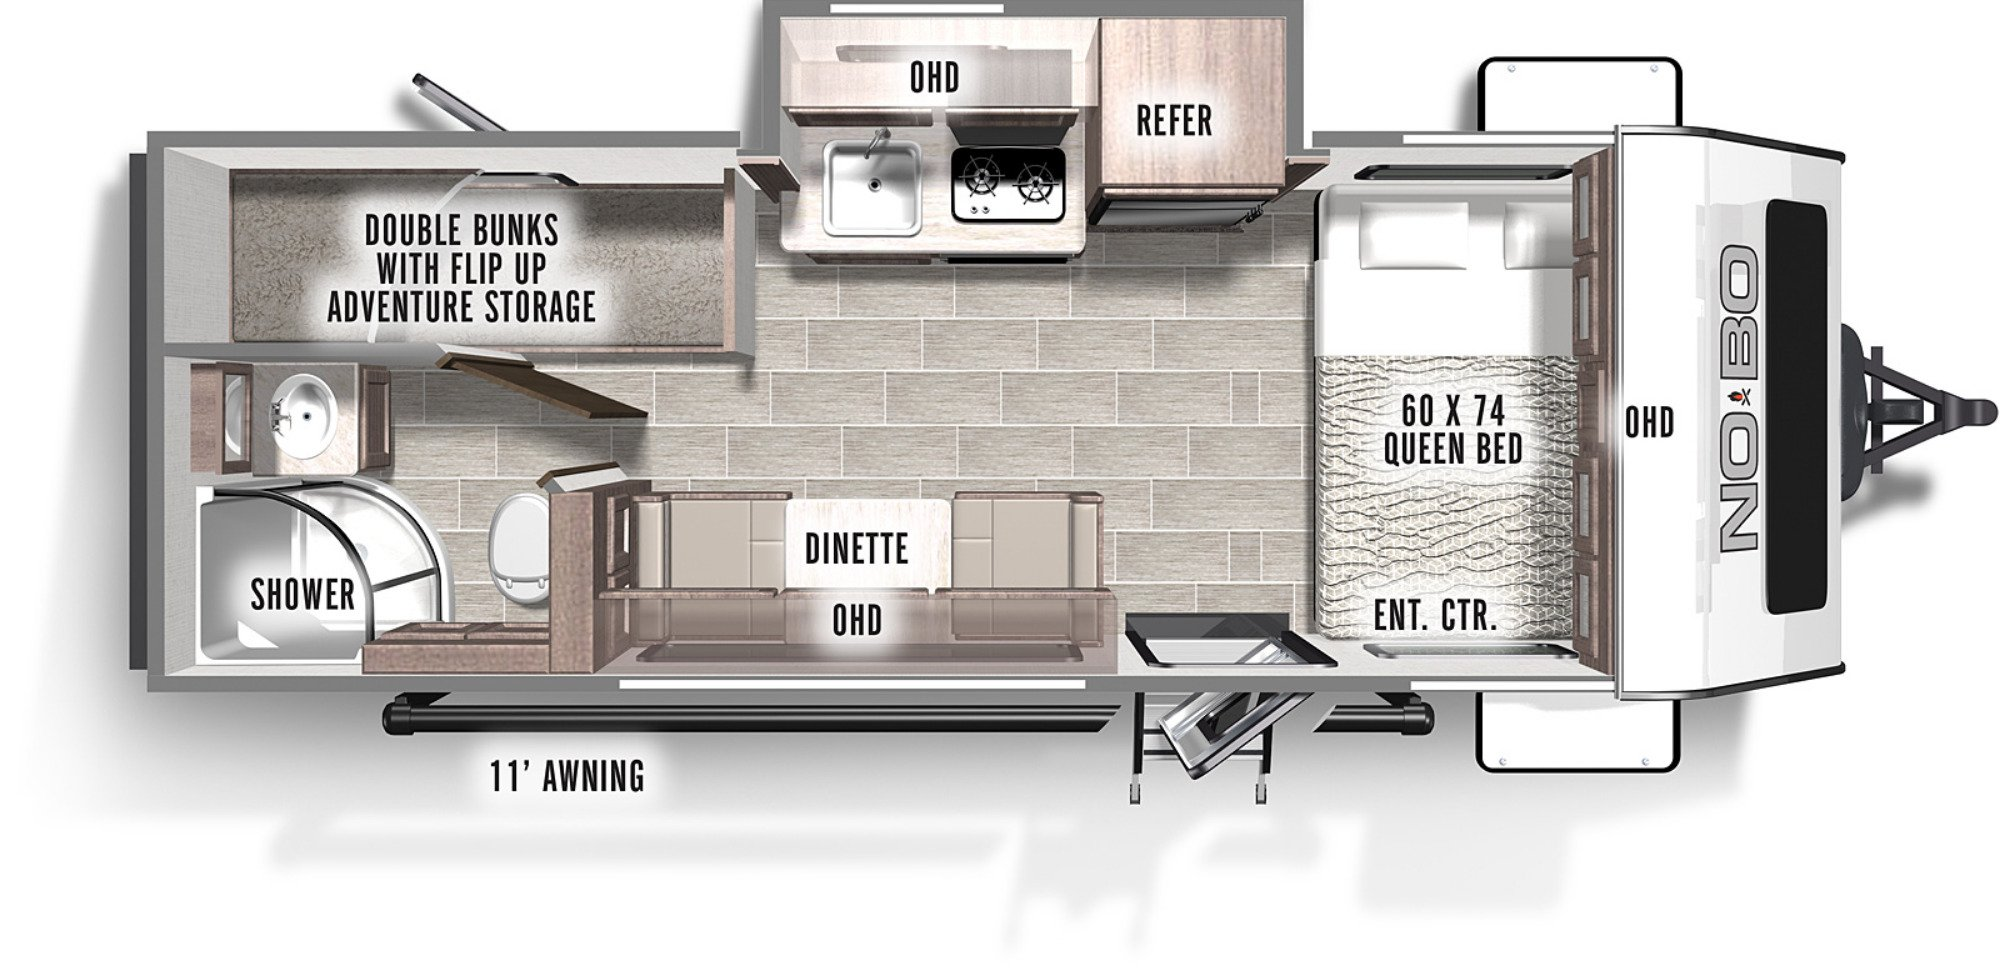 View Floor Plan for 2021 FOREST RIVER NO BOUNDARIES 16.6